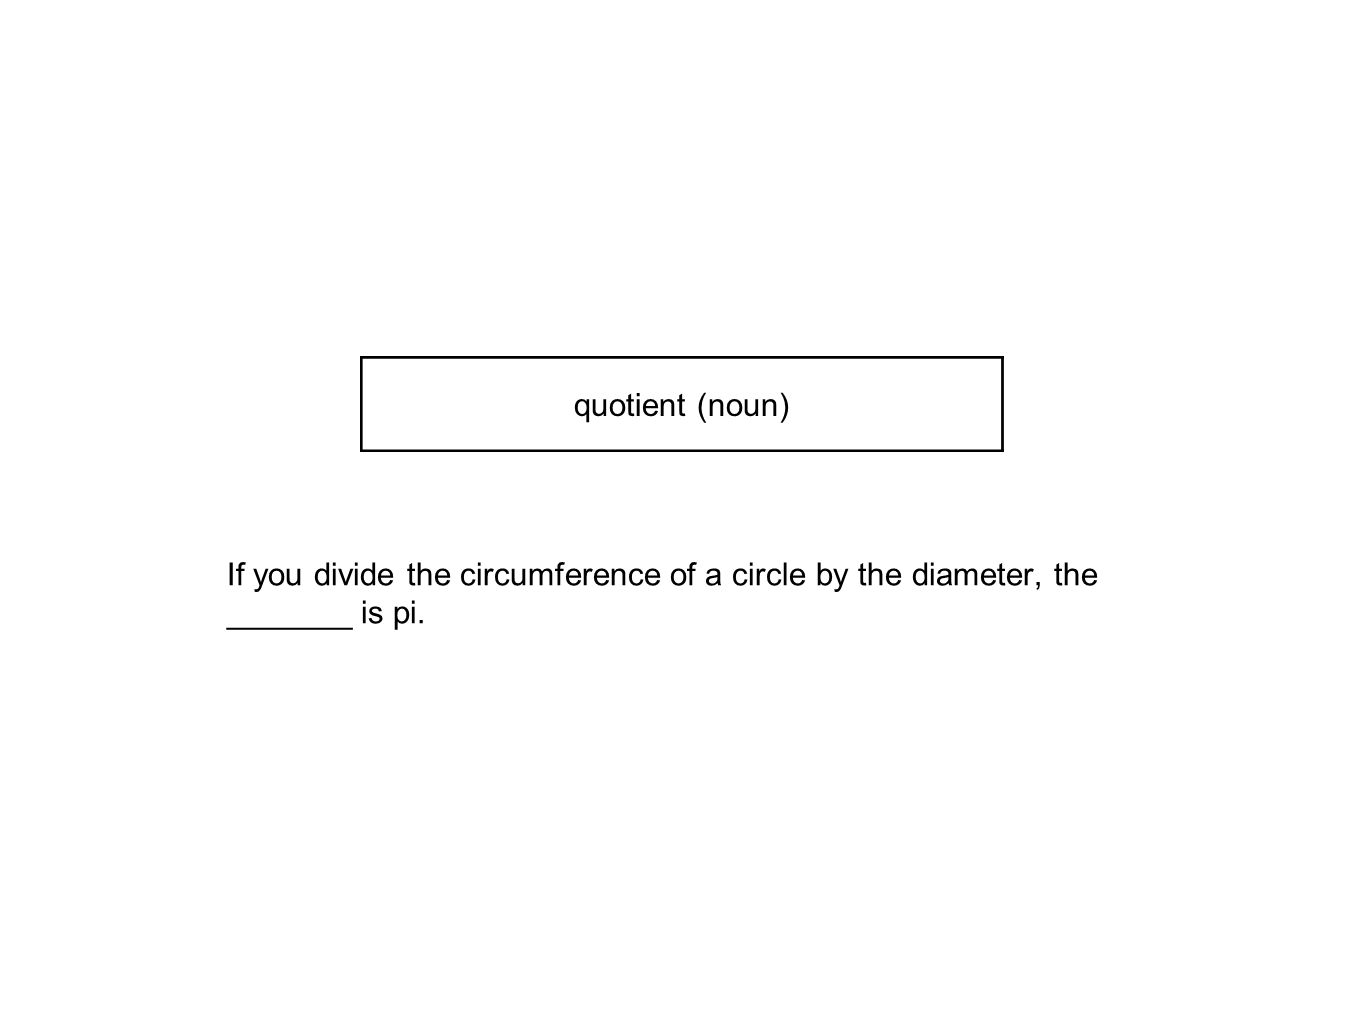 If you divide the circumference of a circle by the diameter, the quotient is pi. quotient (noun)